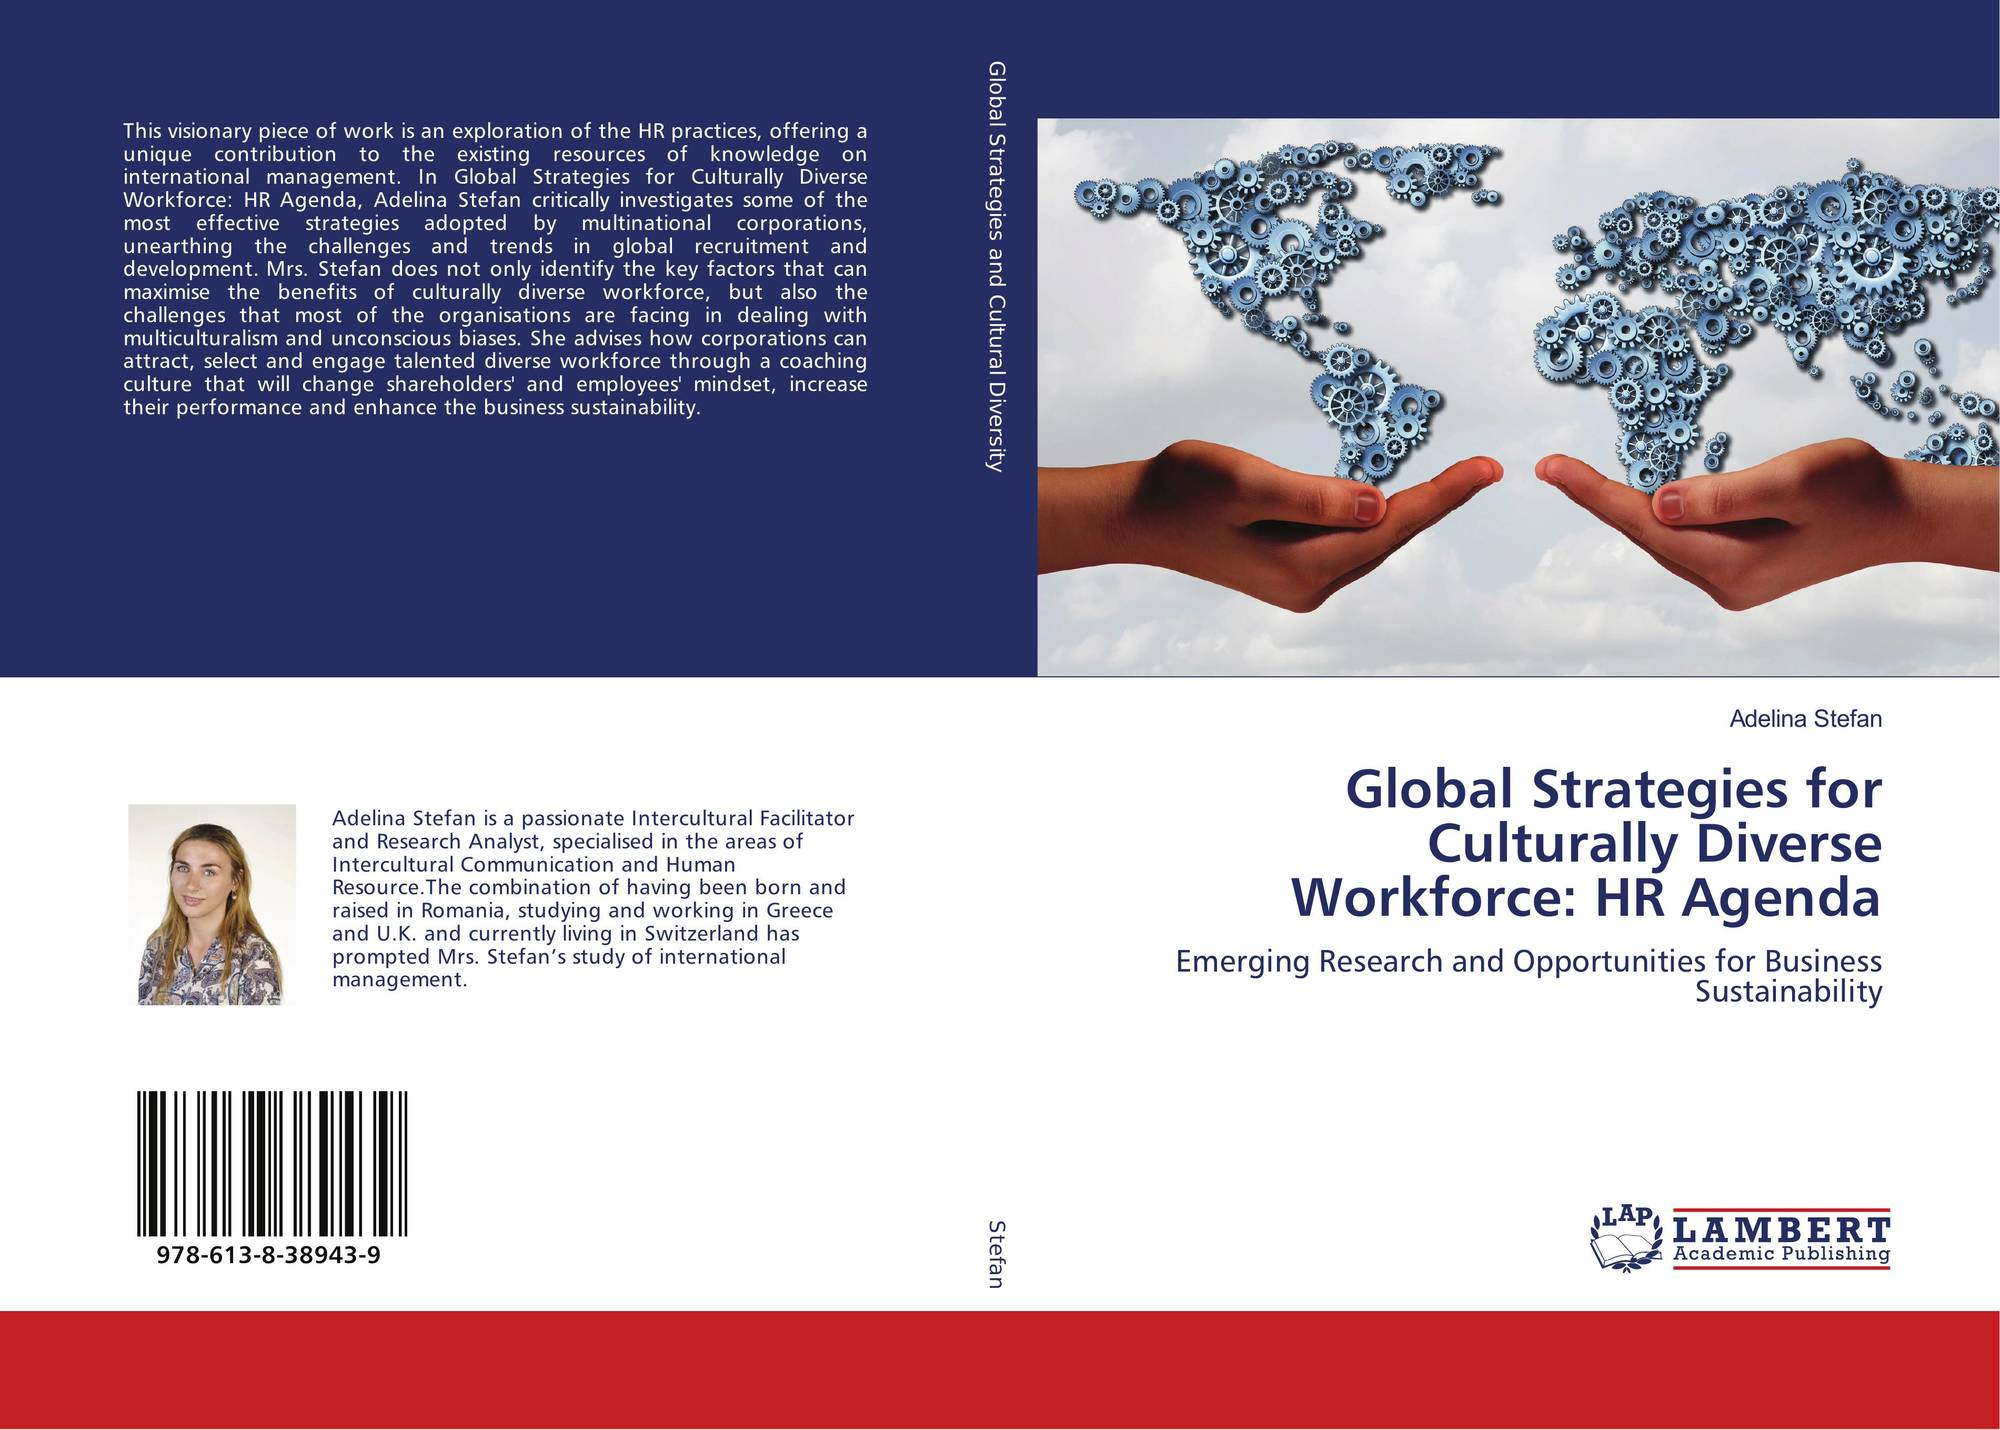 Global Strategies for Culturally Diverse Workforce: HR